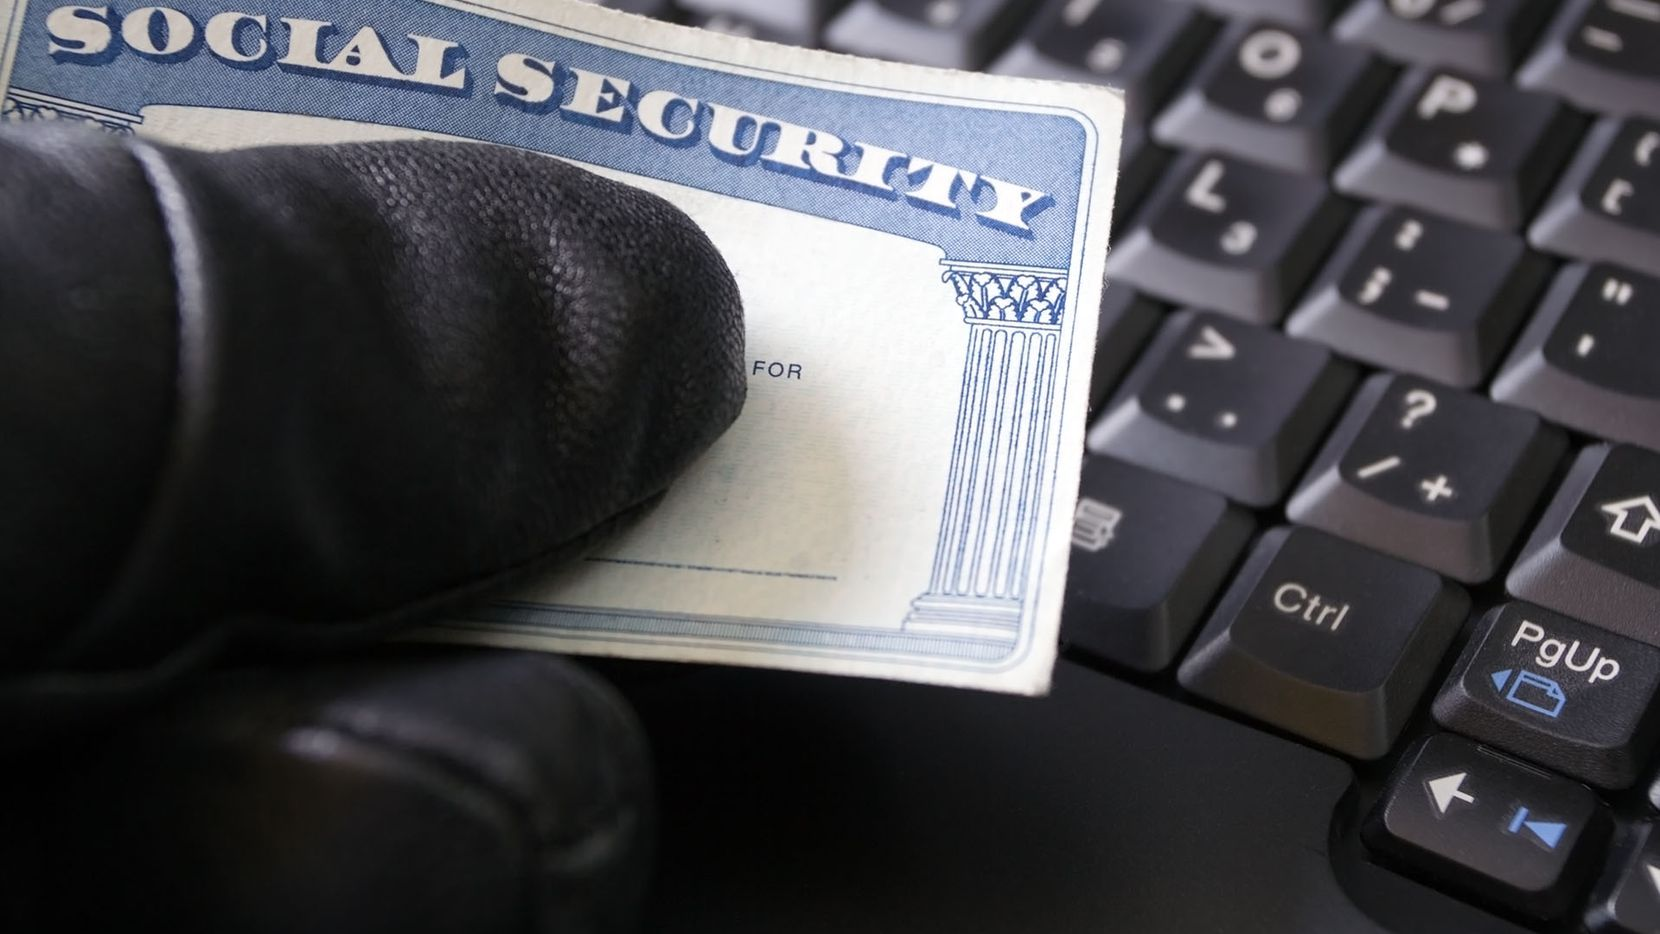 About all the SSA can do is help you monitor your Social Security earnings record.